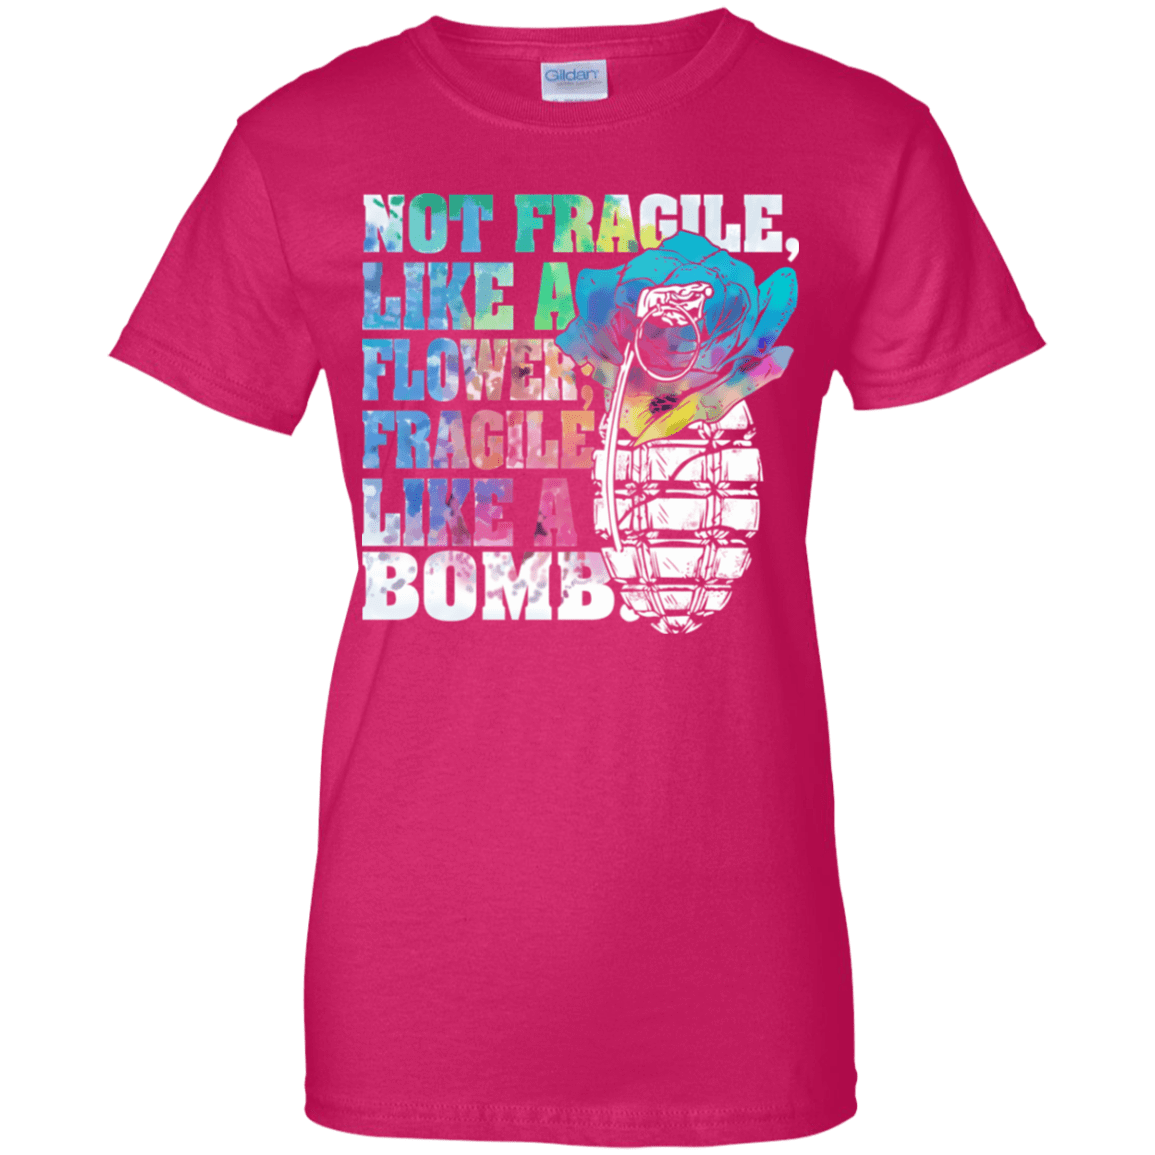 Not Fragile Like A Flower, Fragile Like A Bomb 939-9254-73170840-44779 - Tee Ript